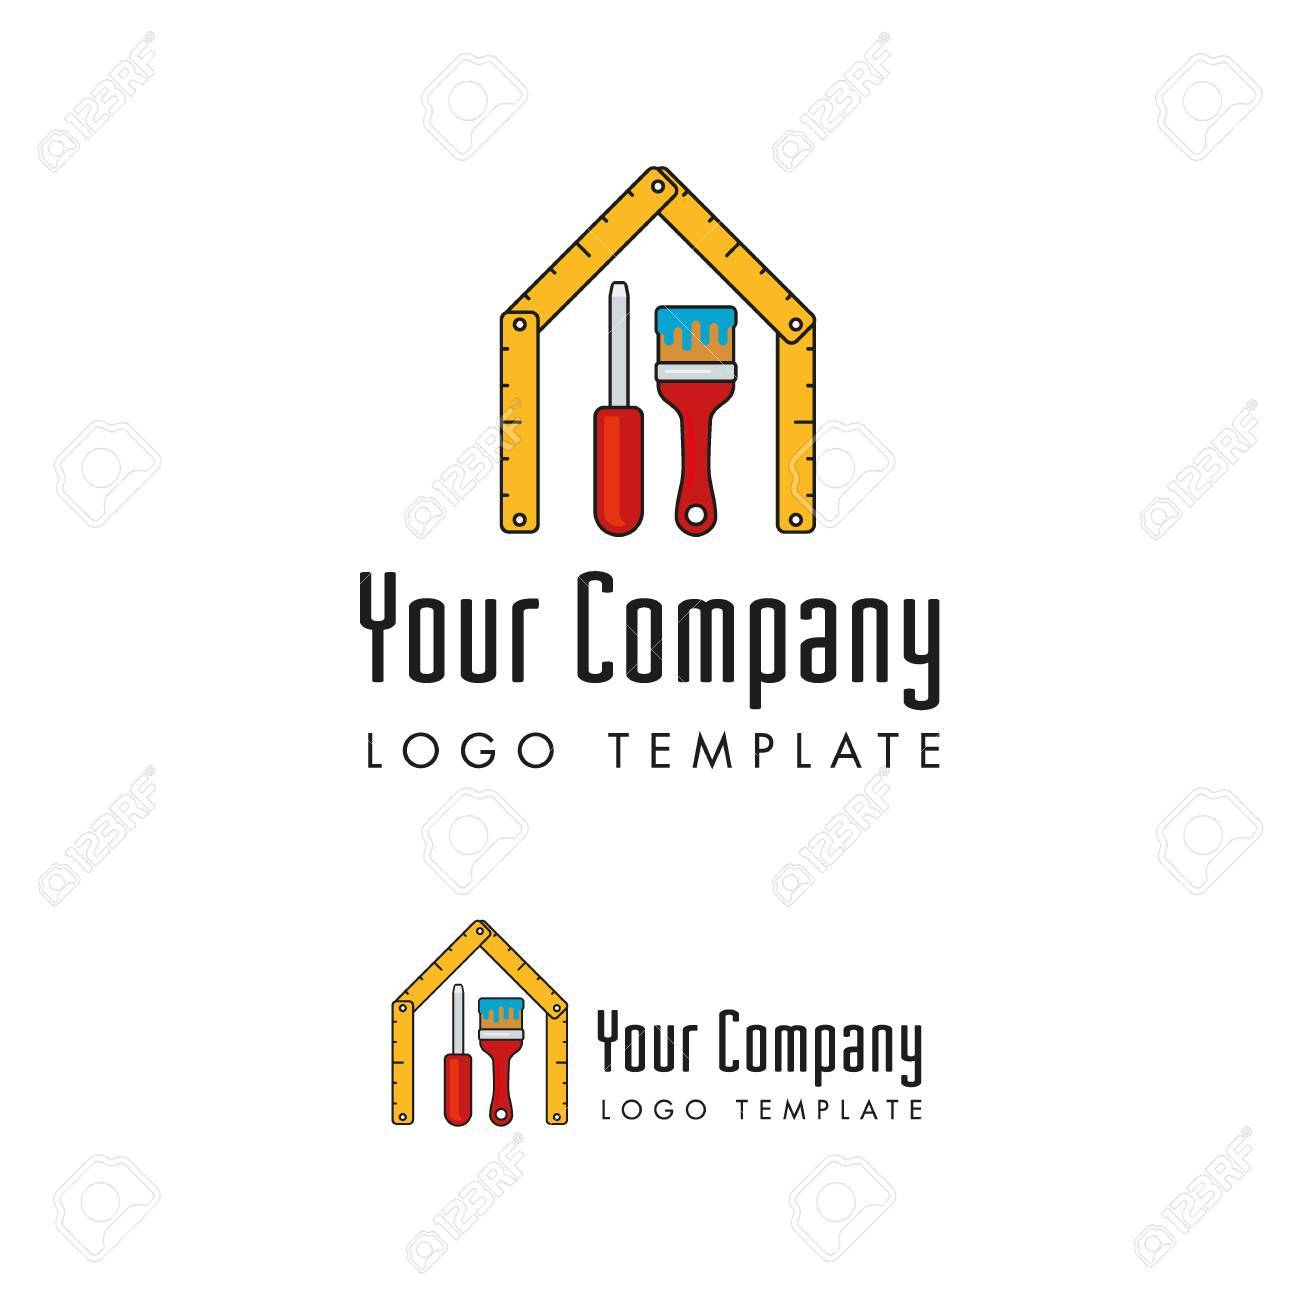 Janitors And Facility Management Company Logo Template Royalty Free ...